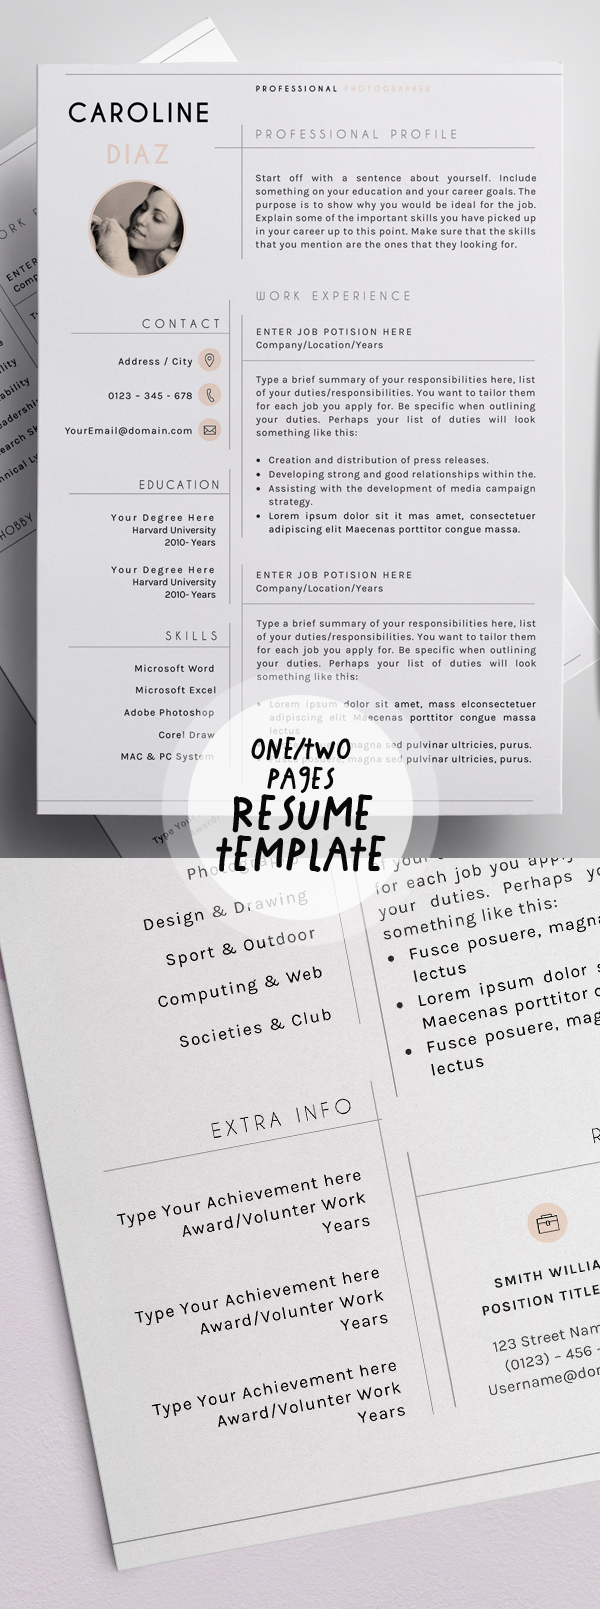 resume template for versatile